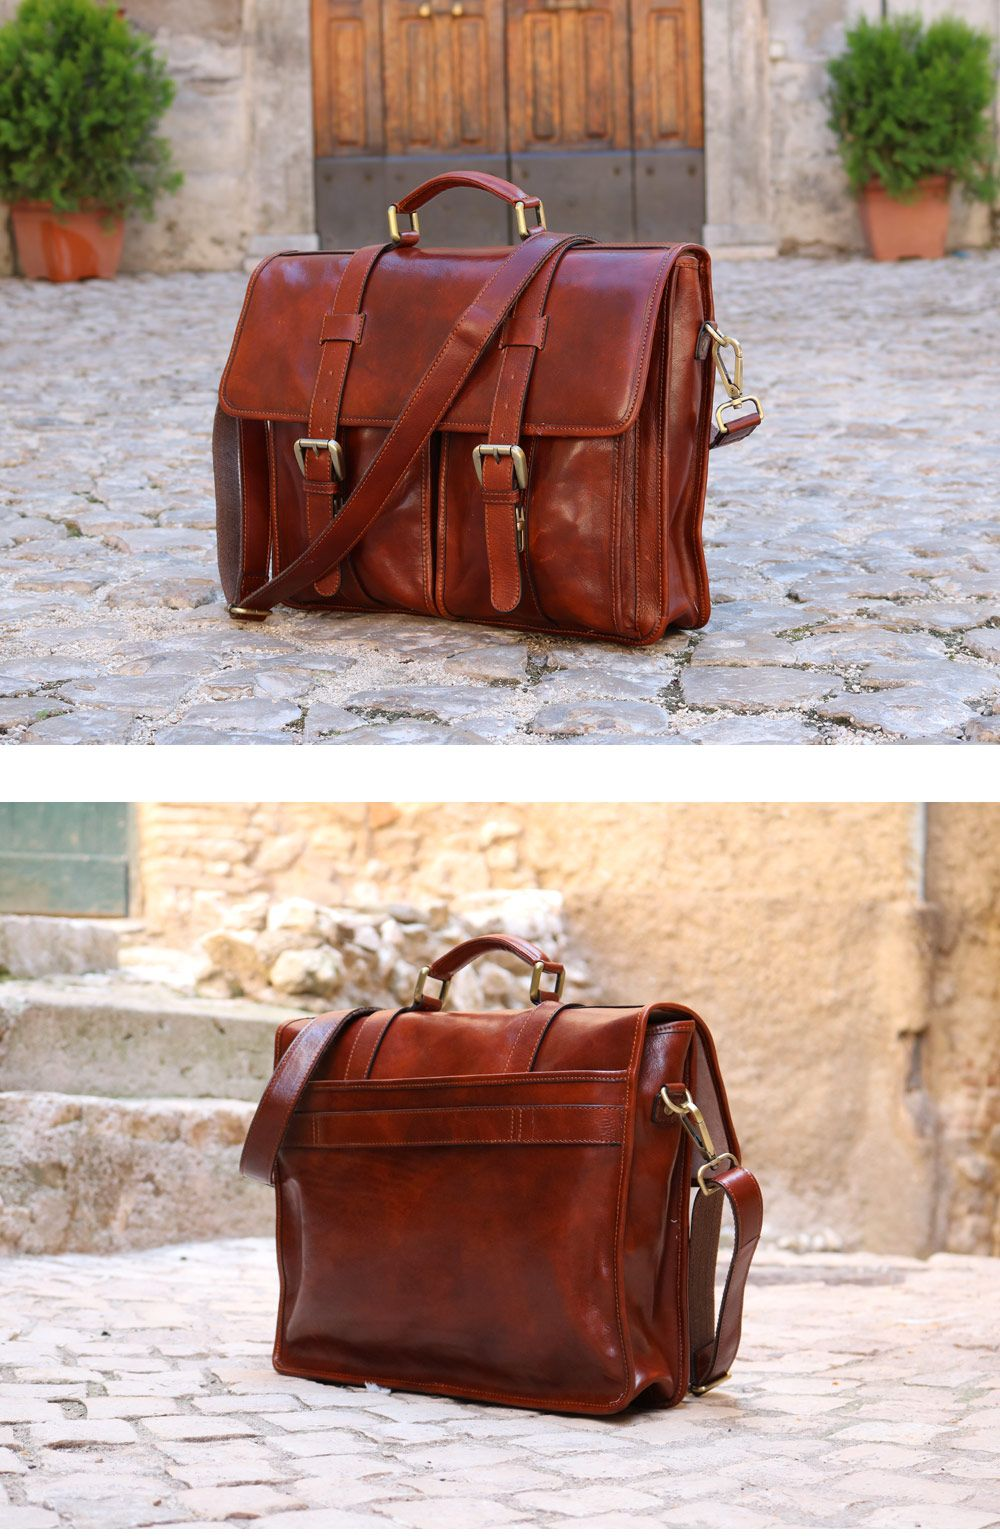 The Floto Firenze Buckle Strap Briefcase is handcrafted in Italy using hand  stained full grain leather. 5966c3147b105